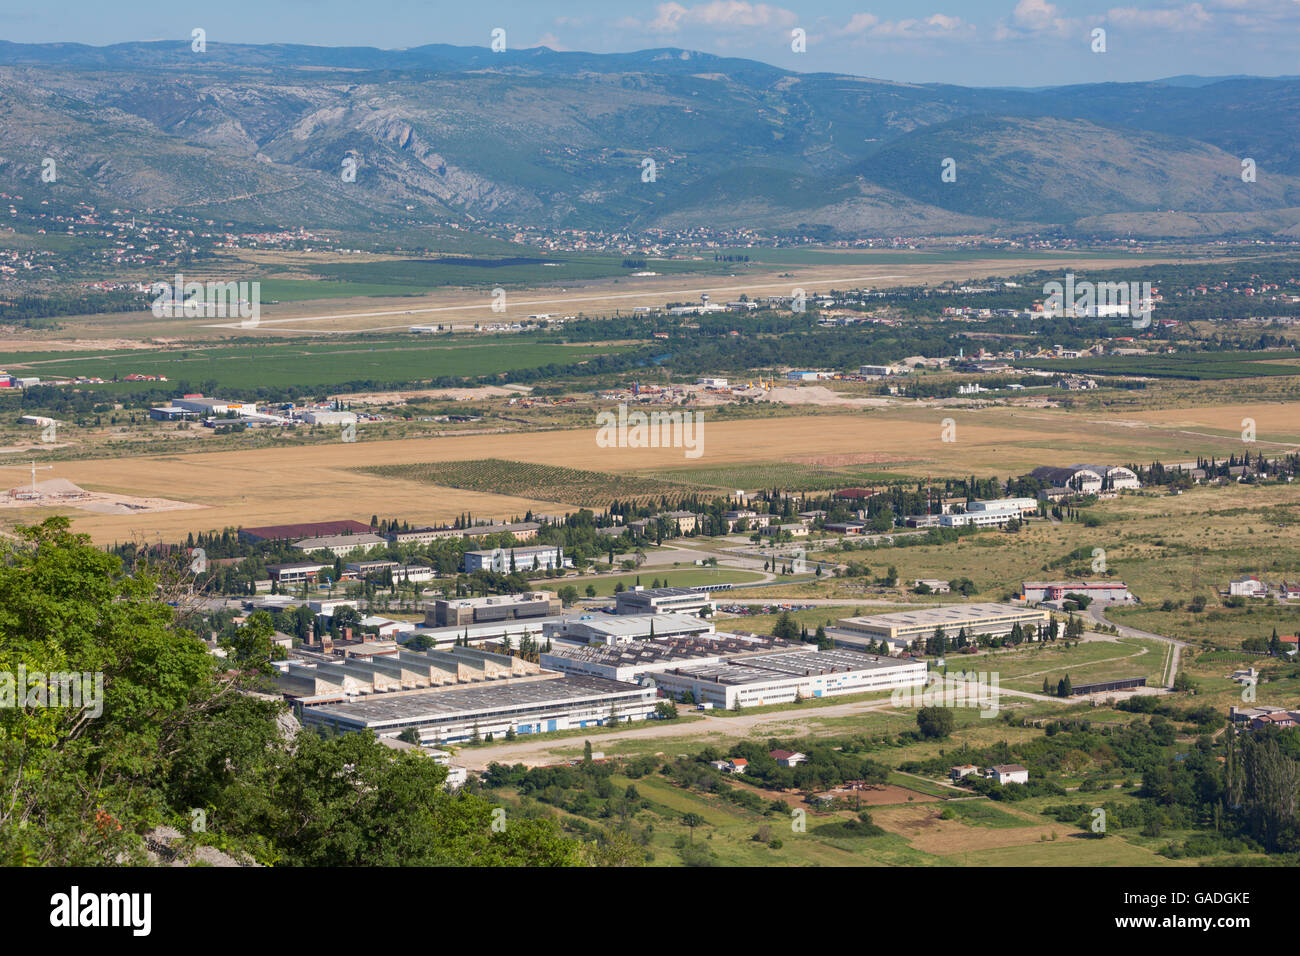 Mostar, Bosnia-Herzegovina.  Intera Technological Park. - Stock Image